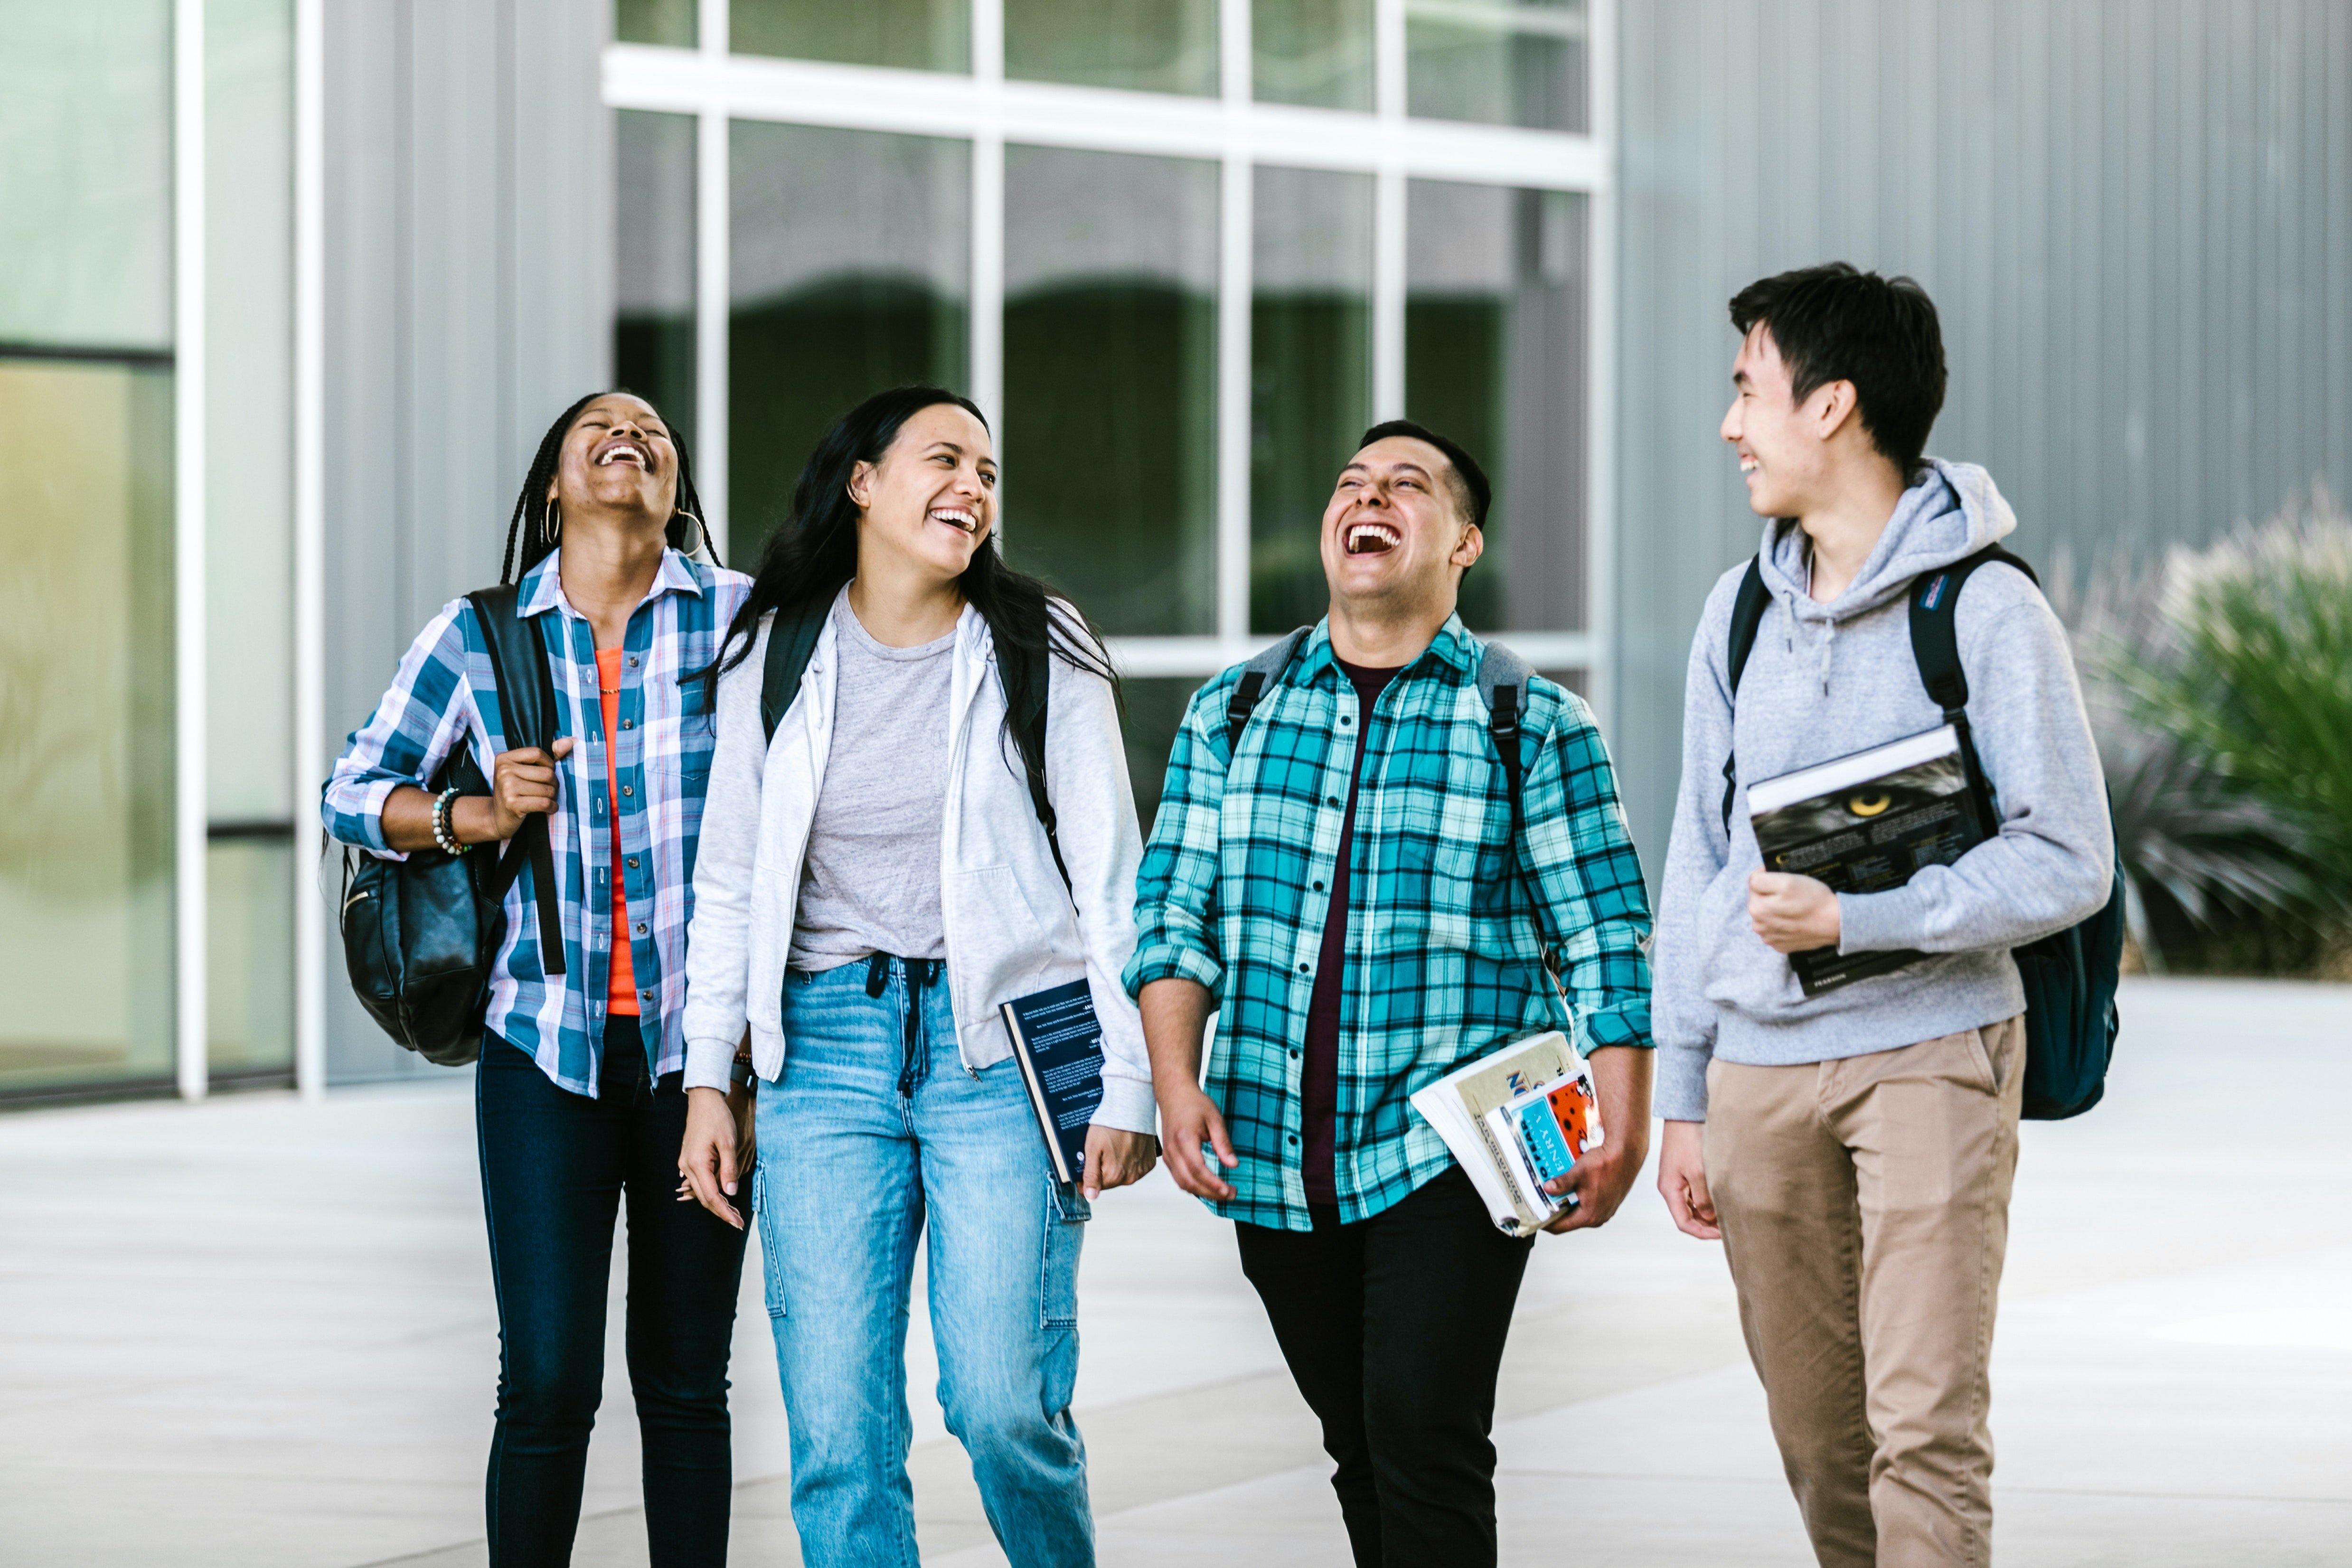 A group of students laughing | Photo: Pexels